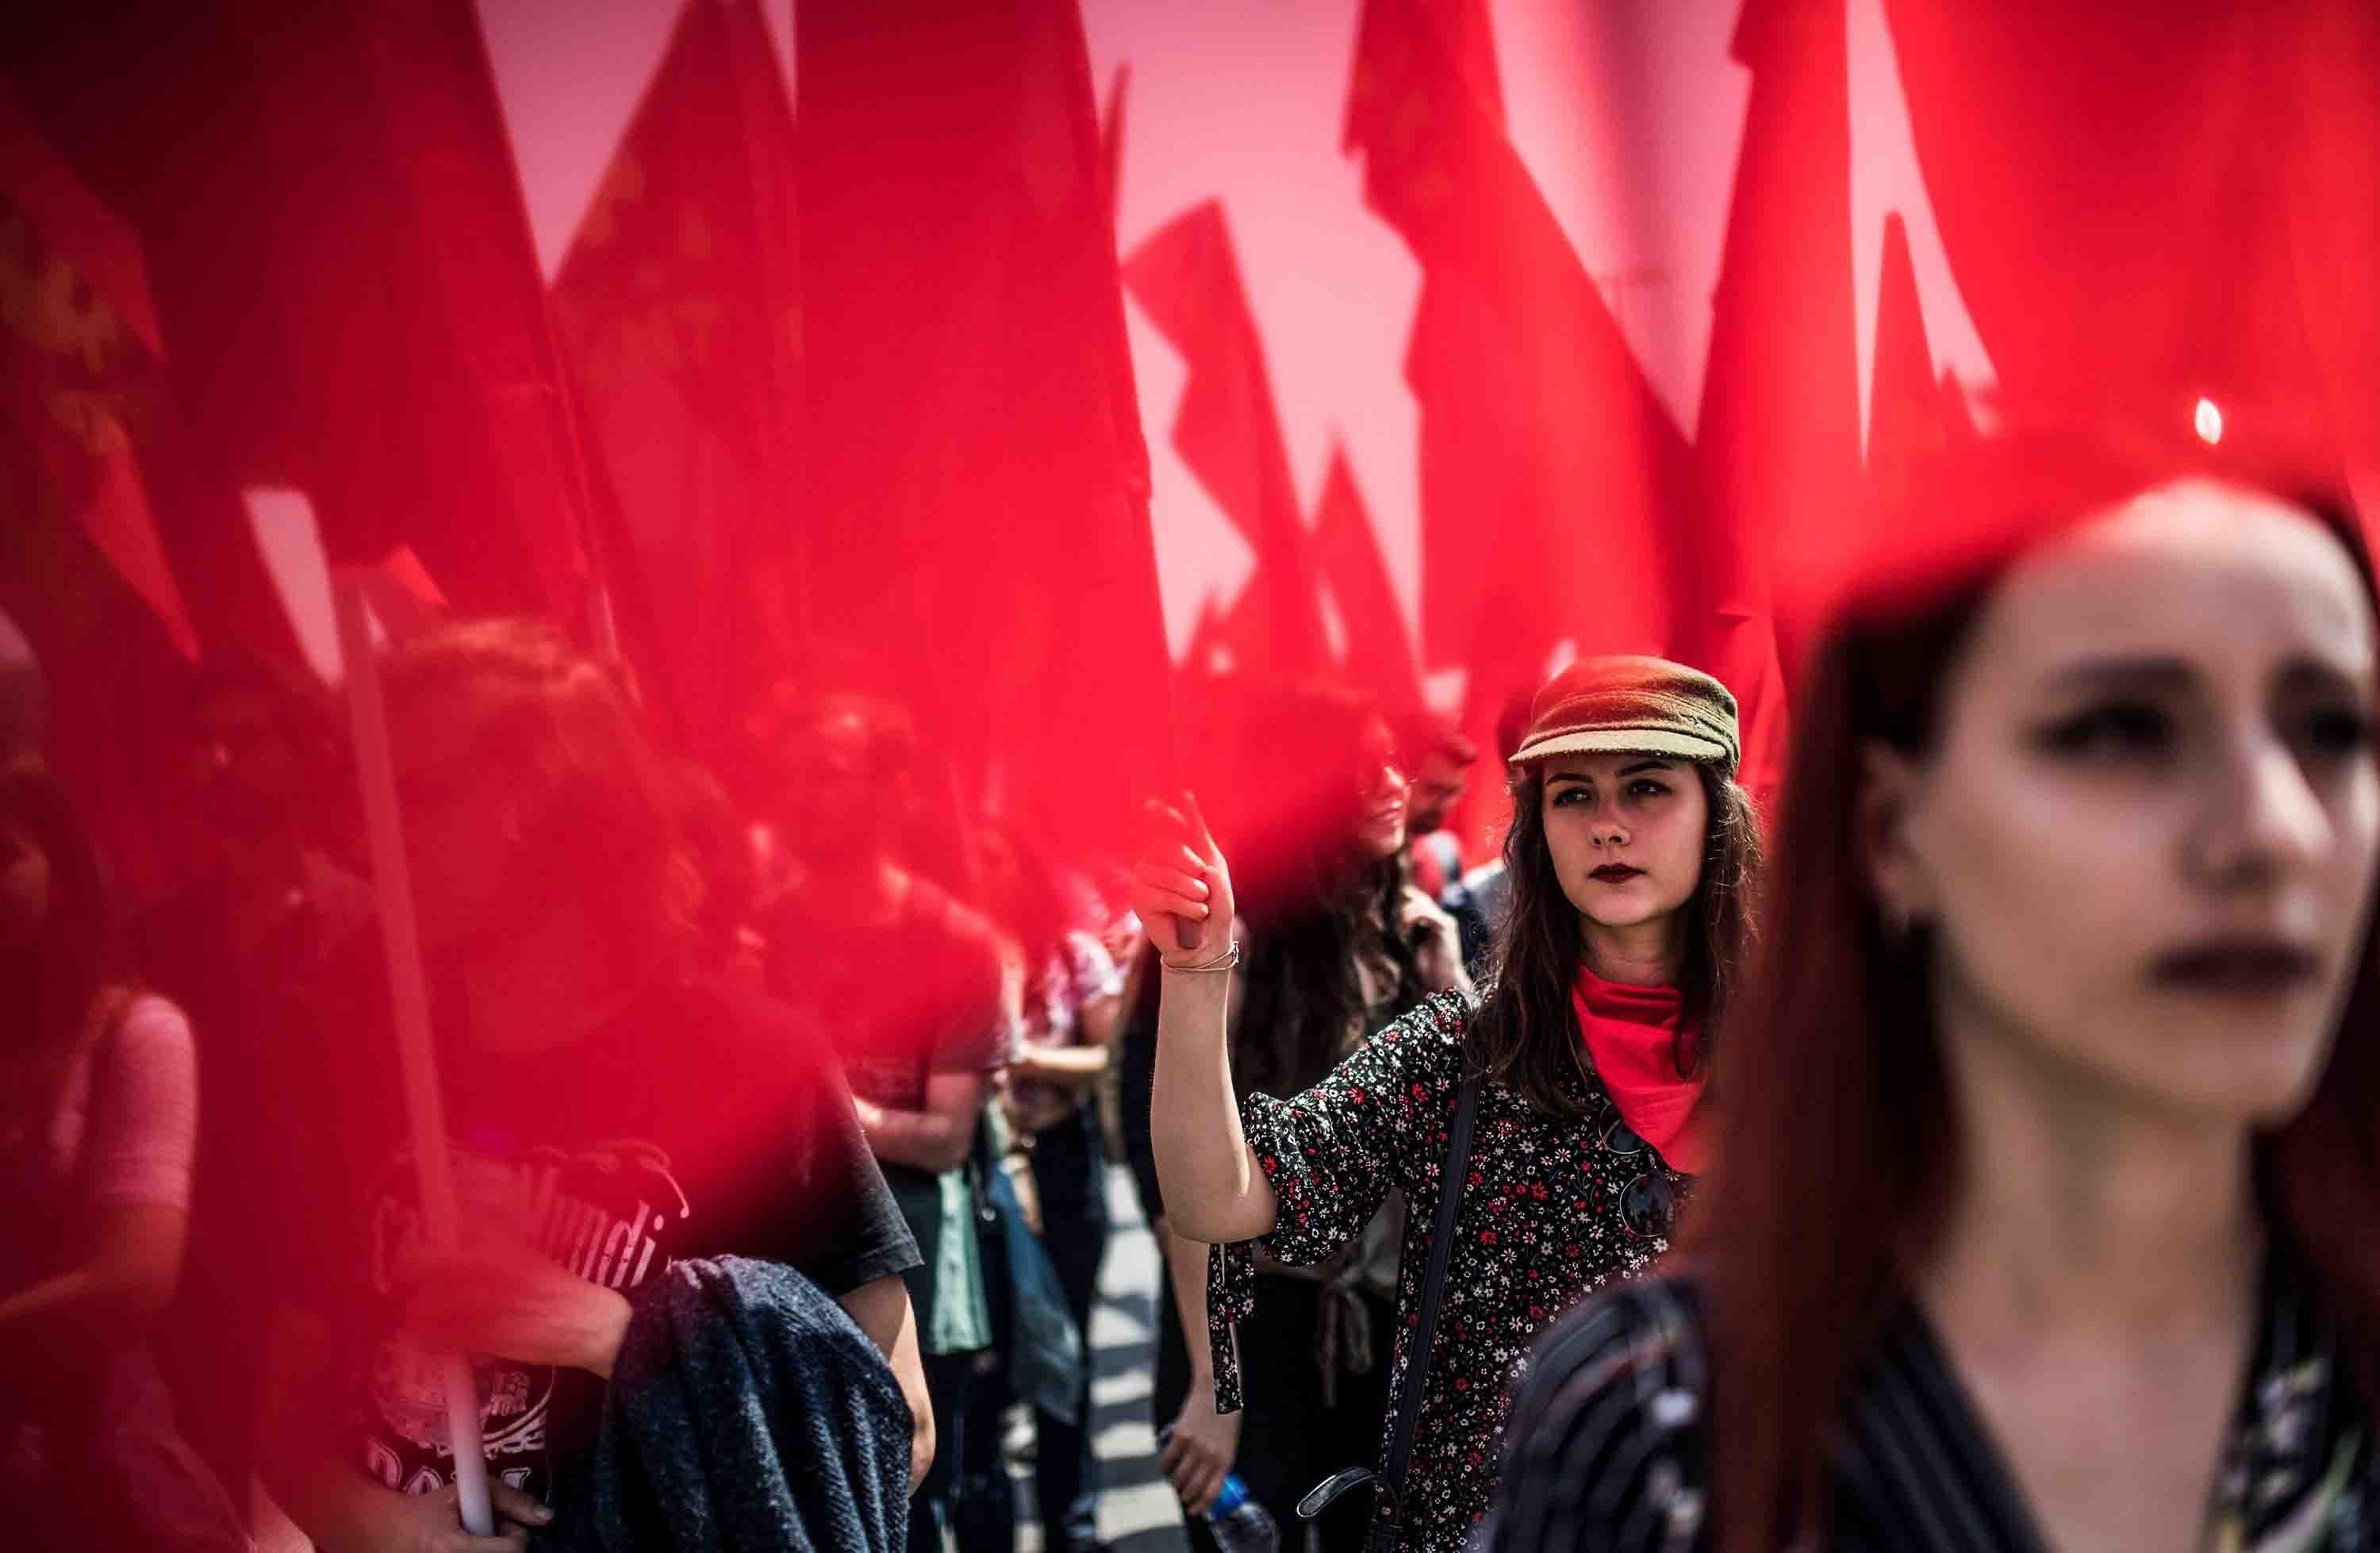 What Is May Day? History, Meaning and Facts About International Workers' Day